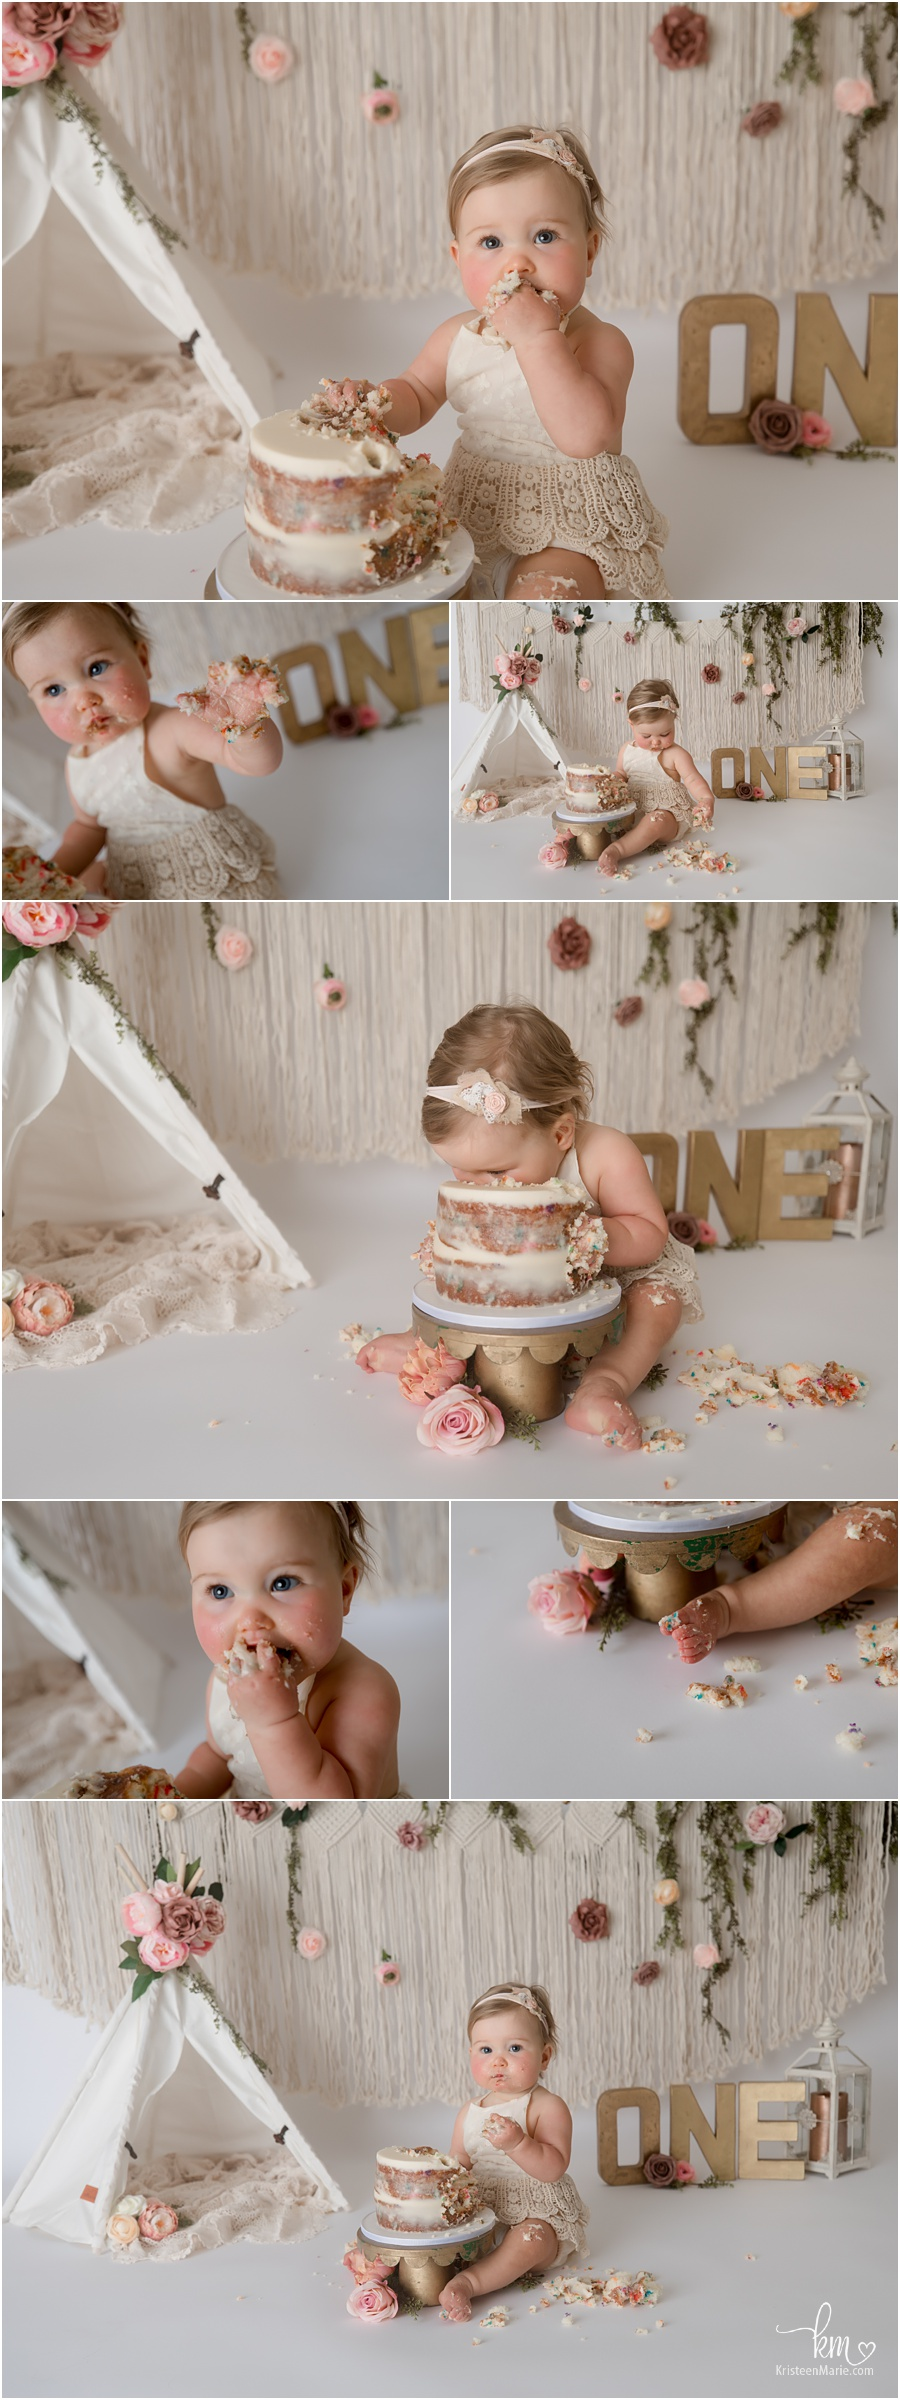 boho 1st birthday party cake smash - pink, blush and macrame